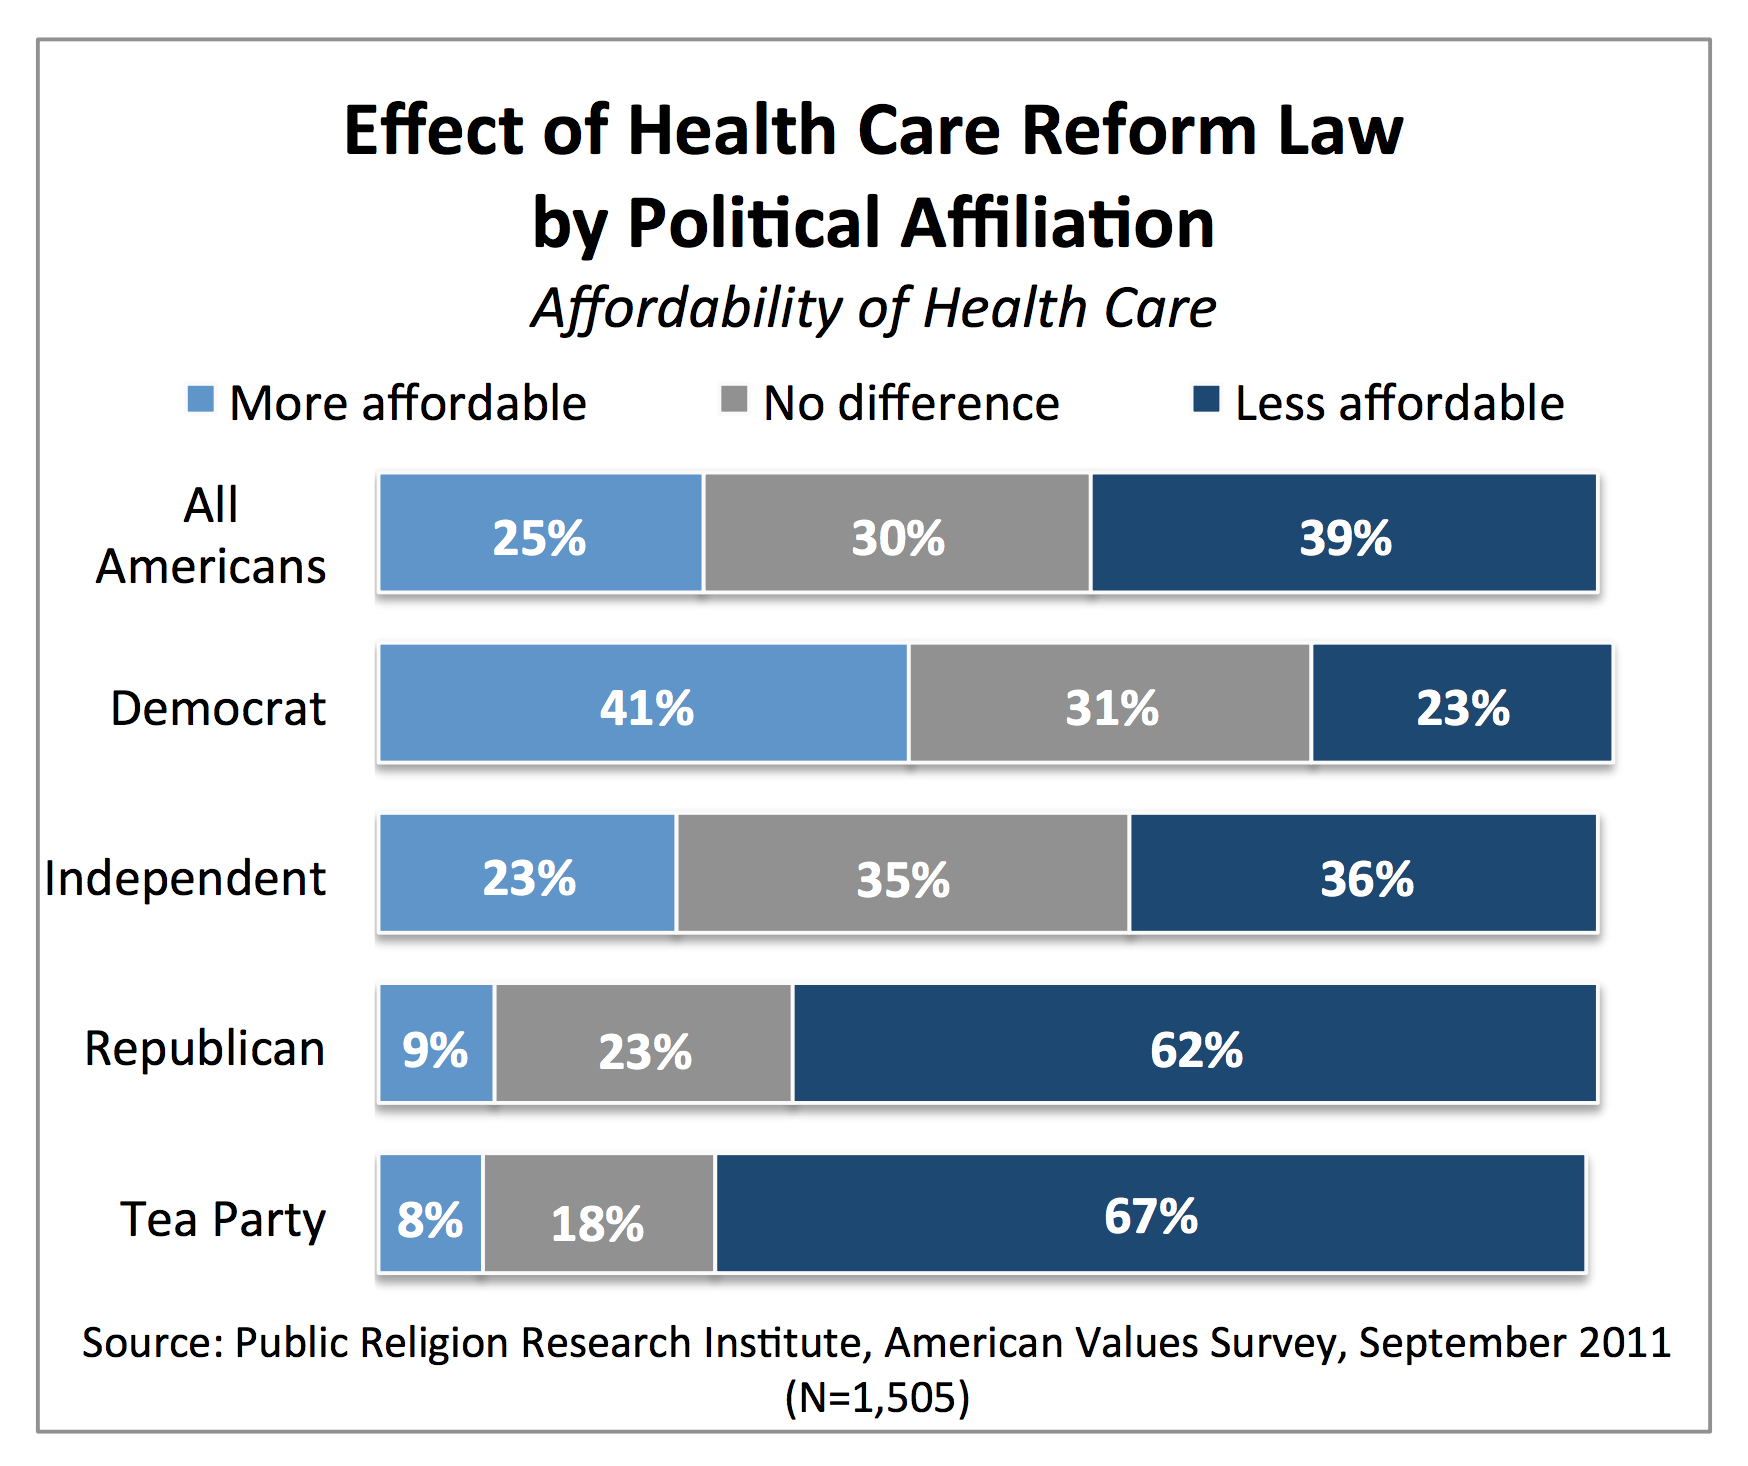 Health Medical Law: The 2011 American Values Survey